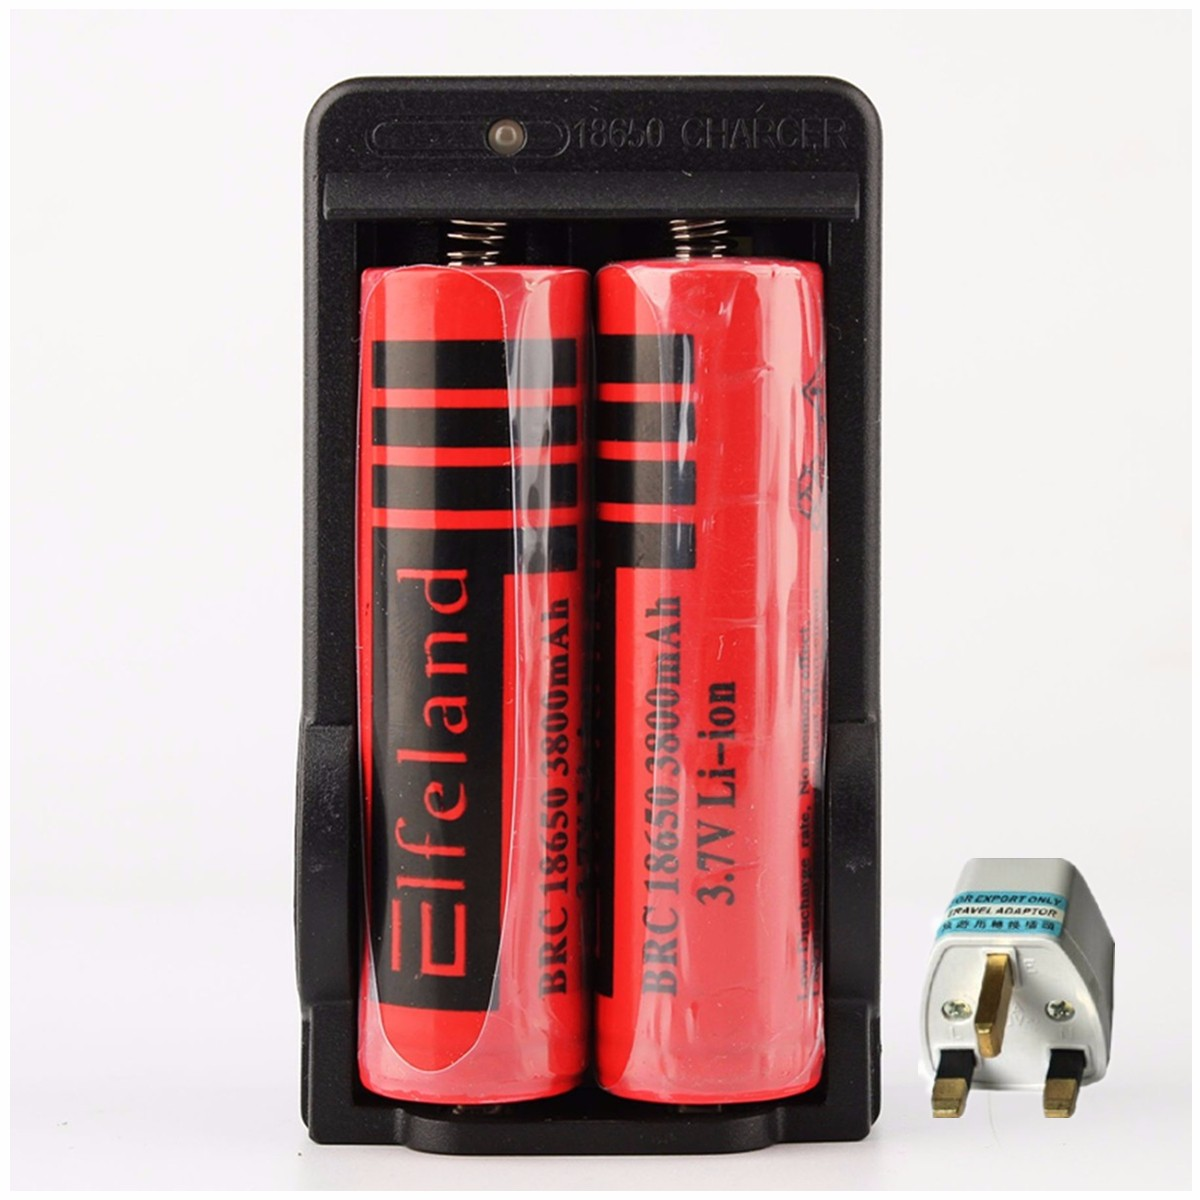 2pcs 3800mAh 18650 Li-ion Rechargeable Battery + Dual Charger Lithium Ion Battery 4.2V Intelligent Charge High Powerful